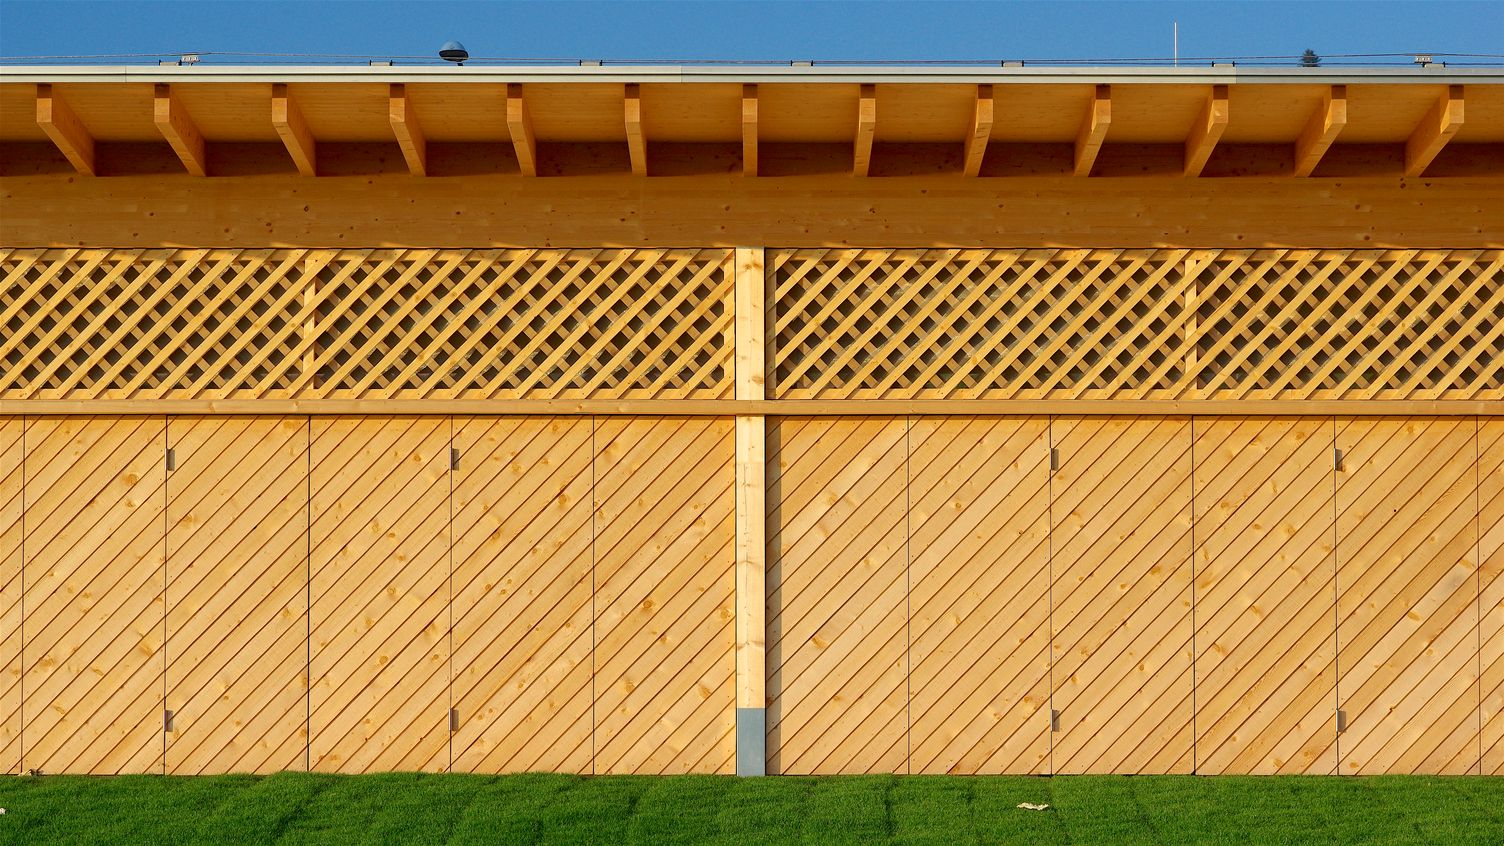 OPEN-AIR BATH LOCHAU - SPRING 2020 (Architekten Innauer Matt) Willem Bruijn ©onehundredyears.eu